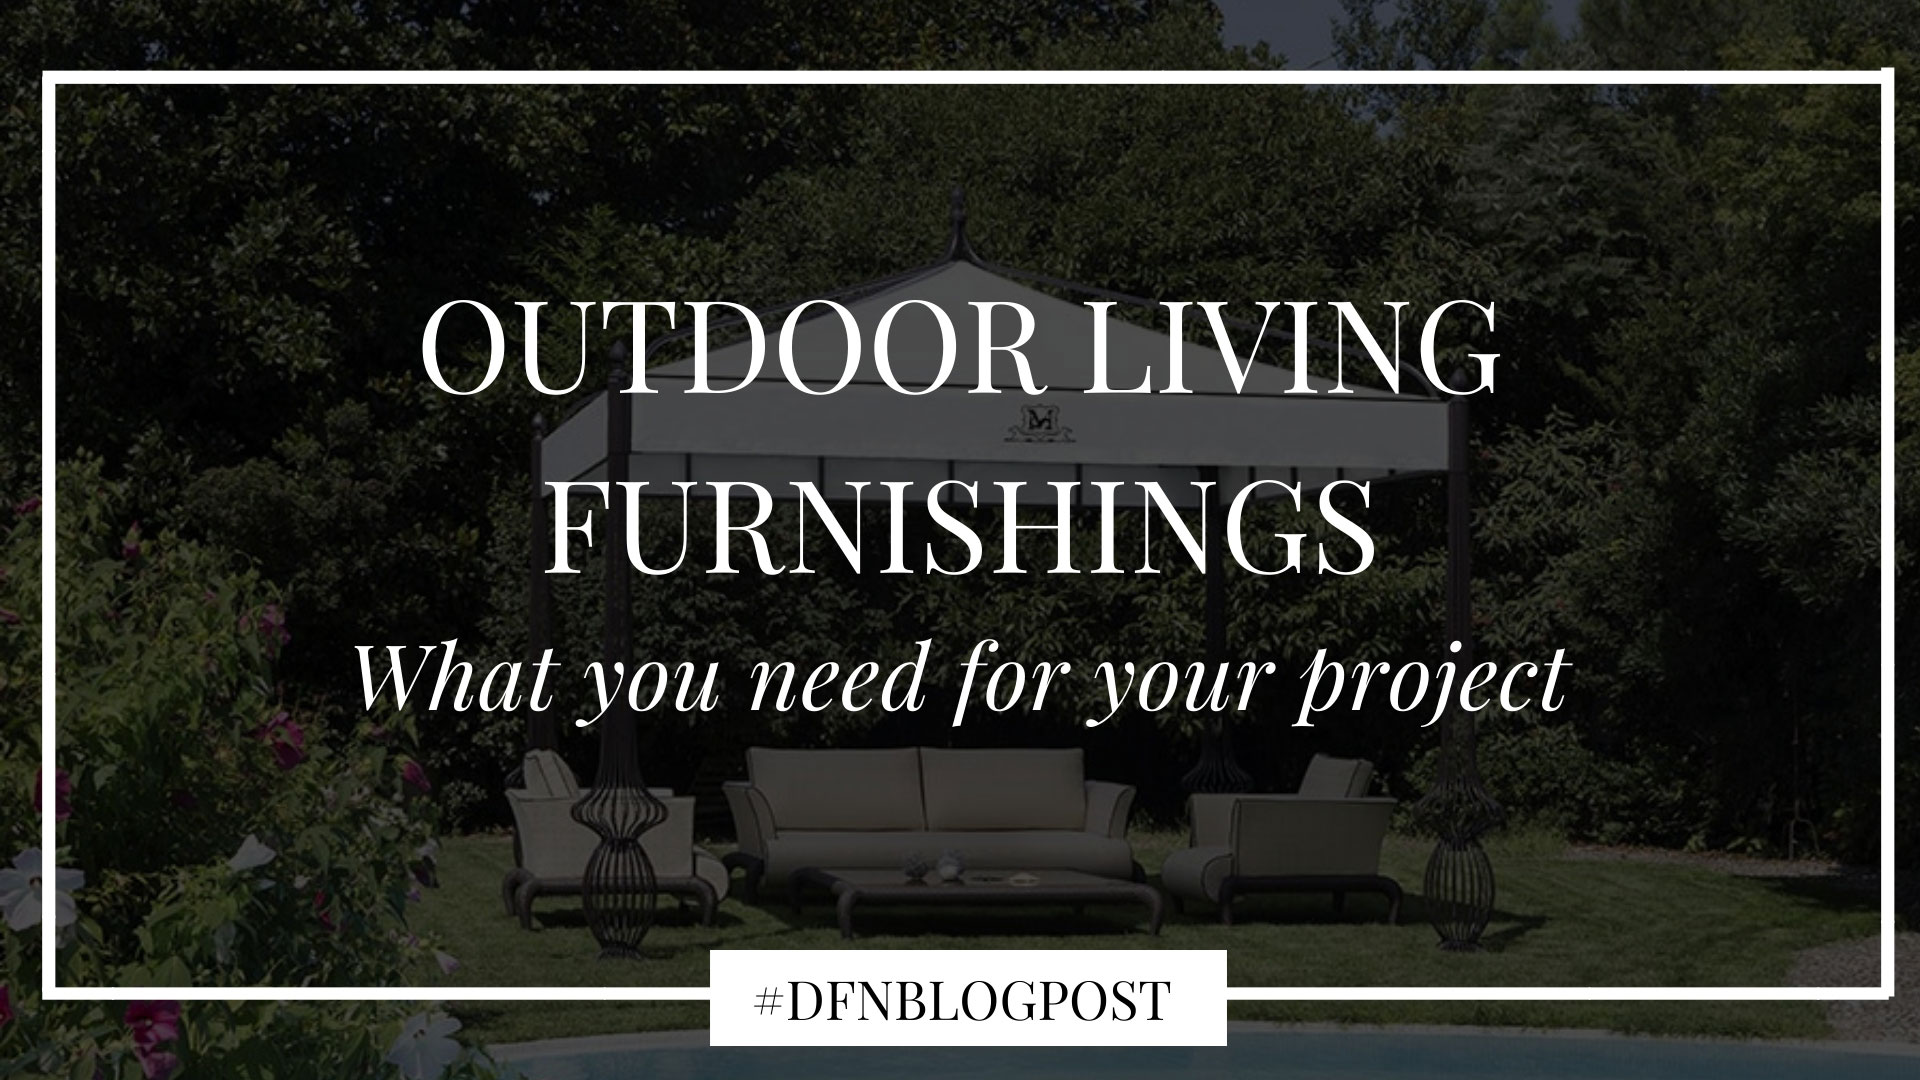 10 outdoor living furnishings you need for your project 1